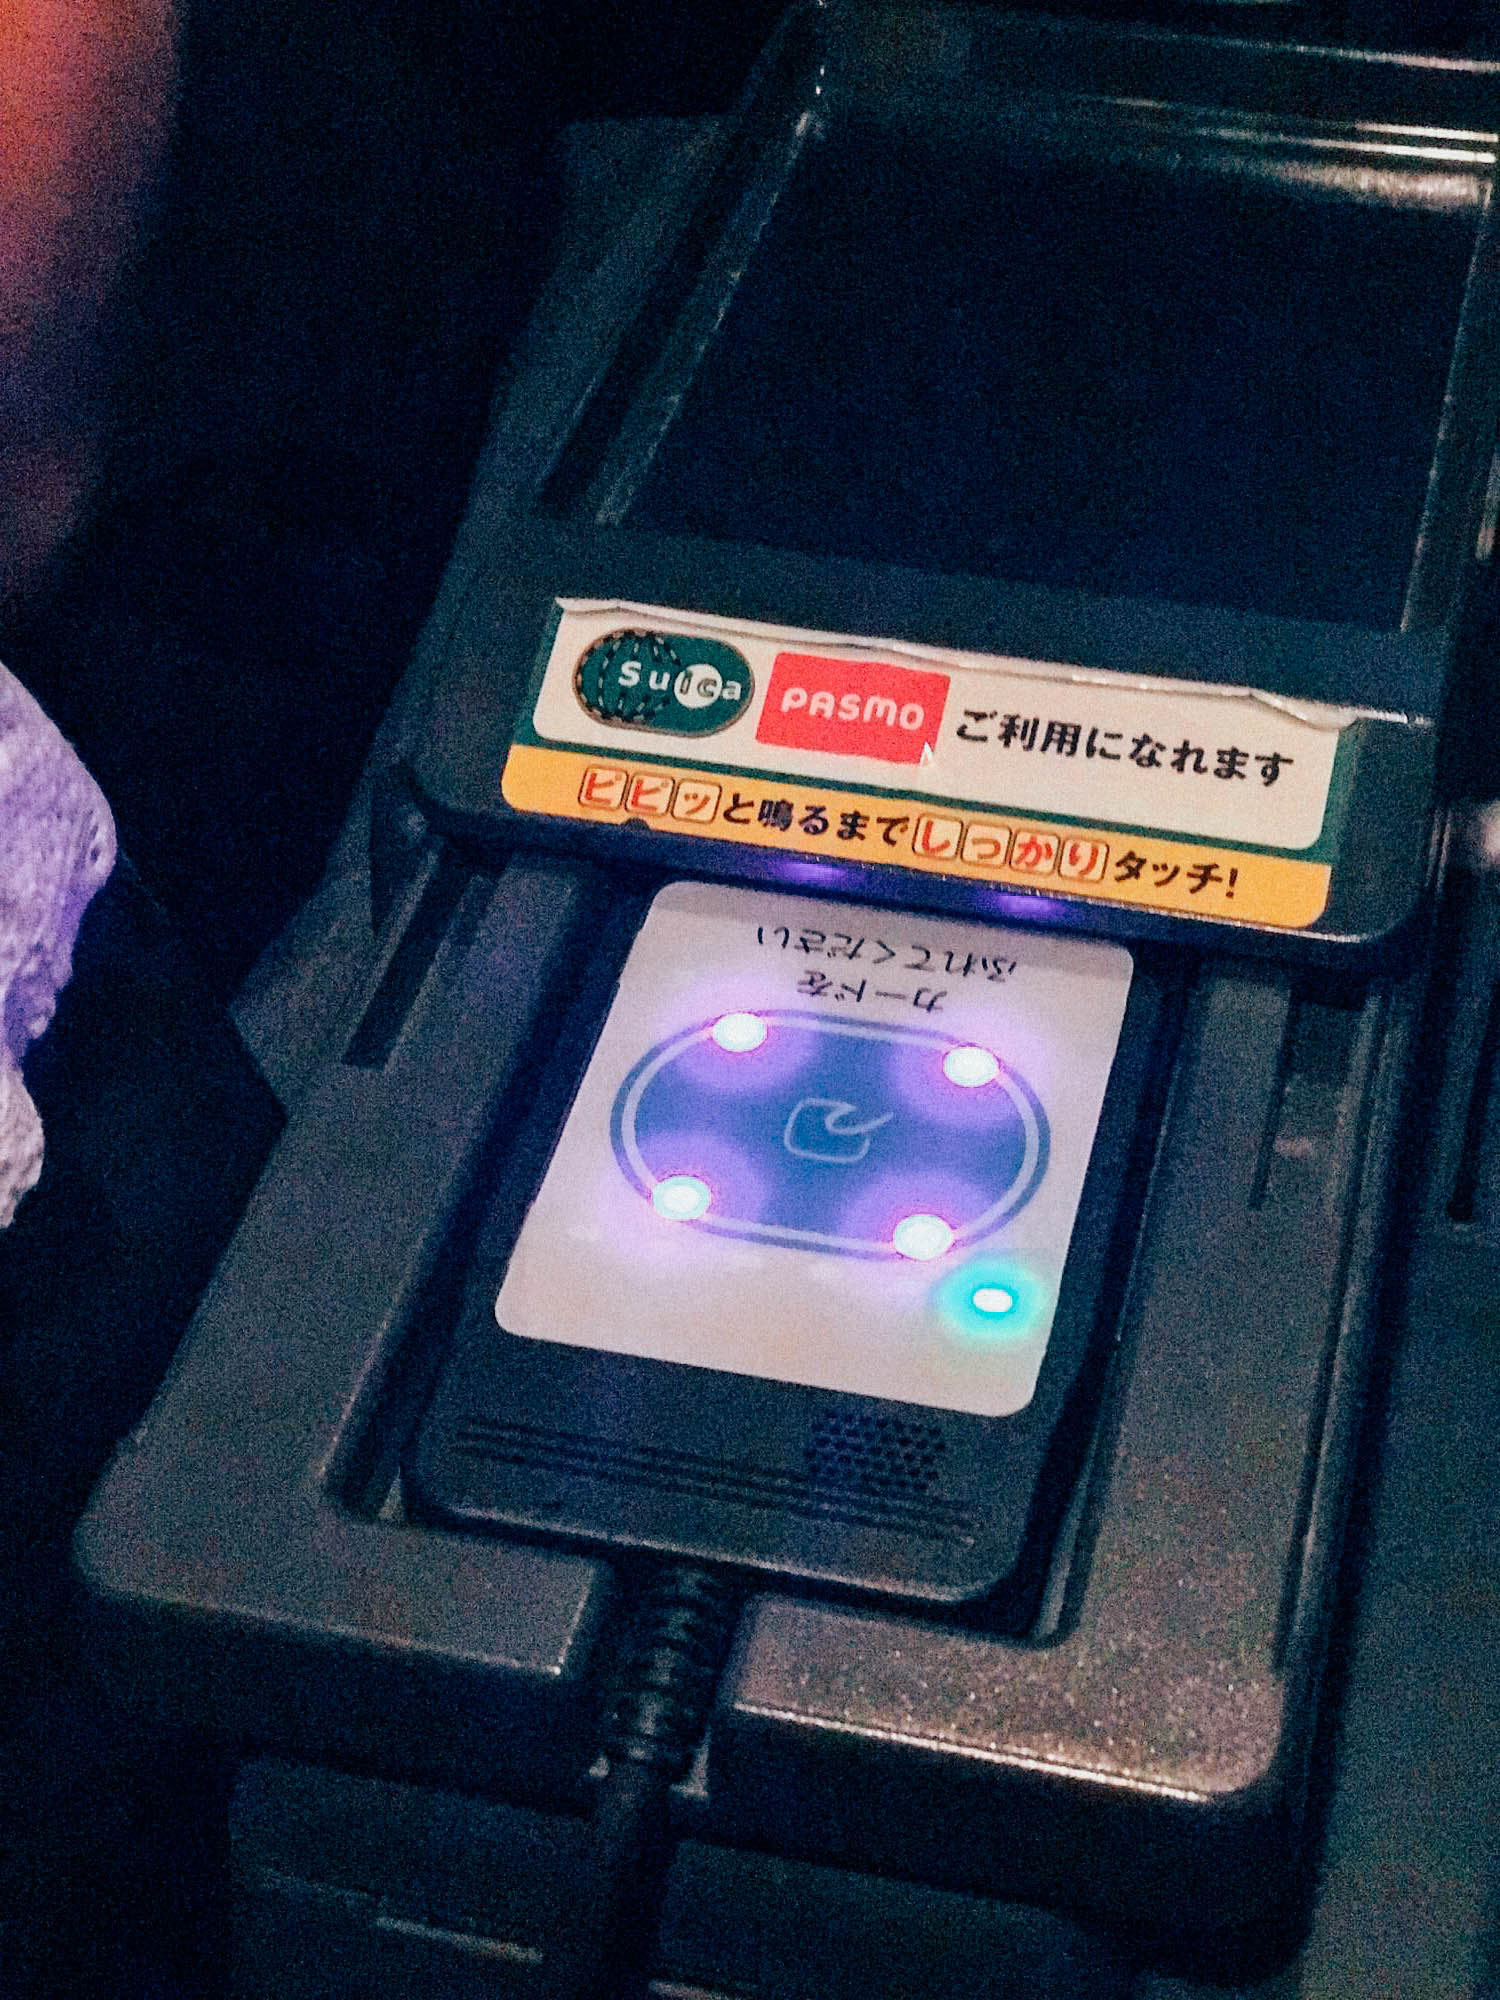 IPhone7 Suica Apple Pay 26 10